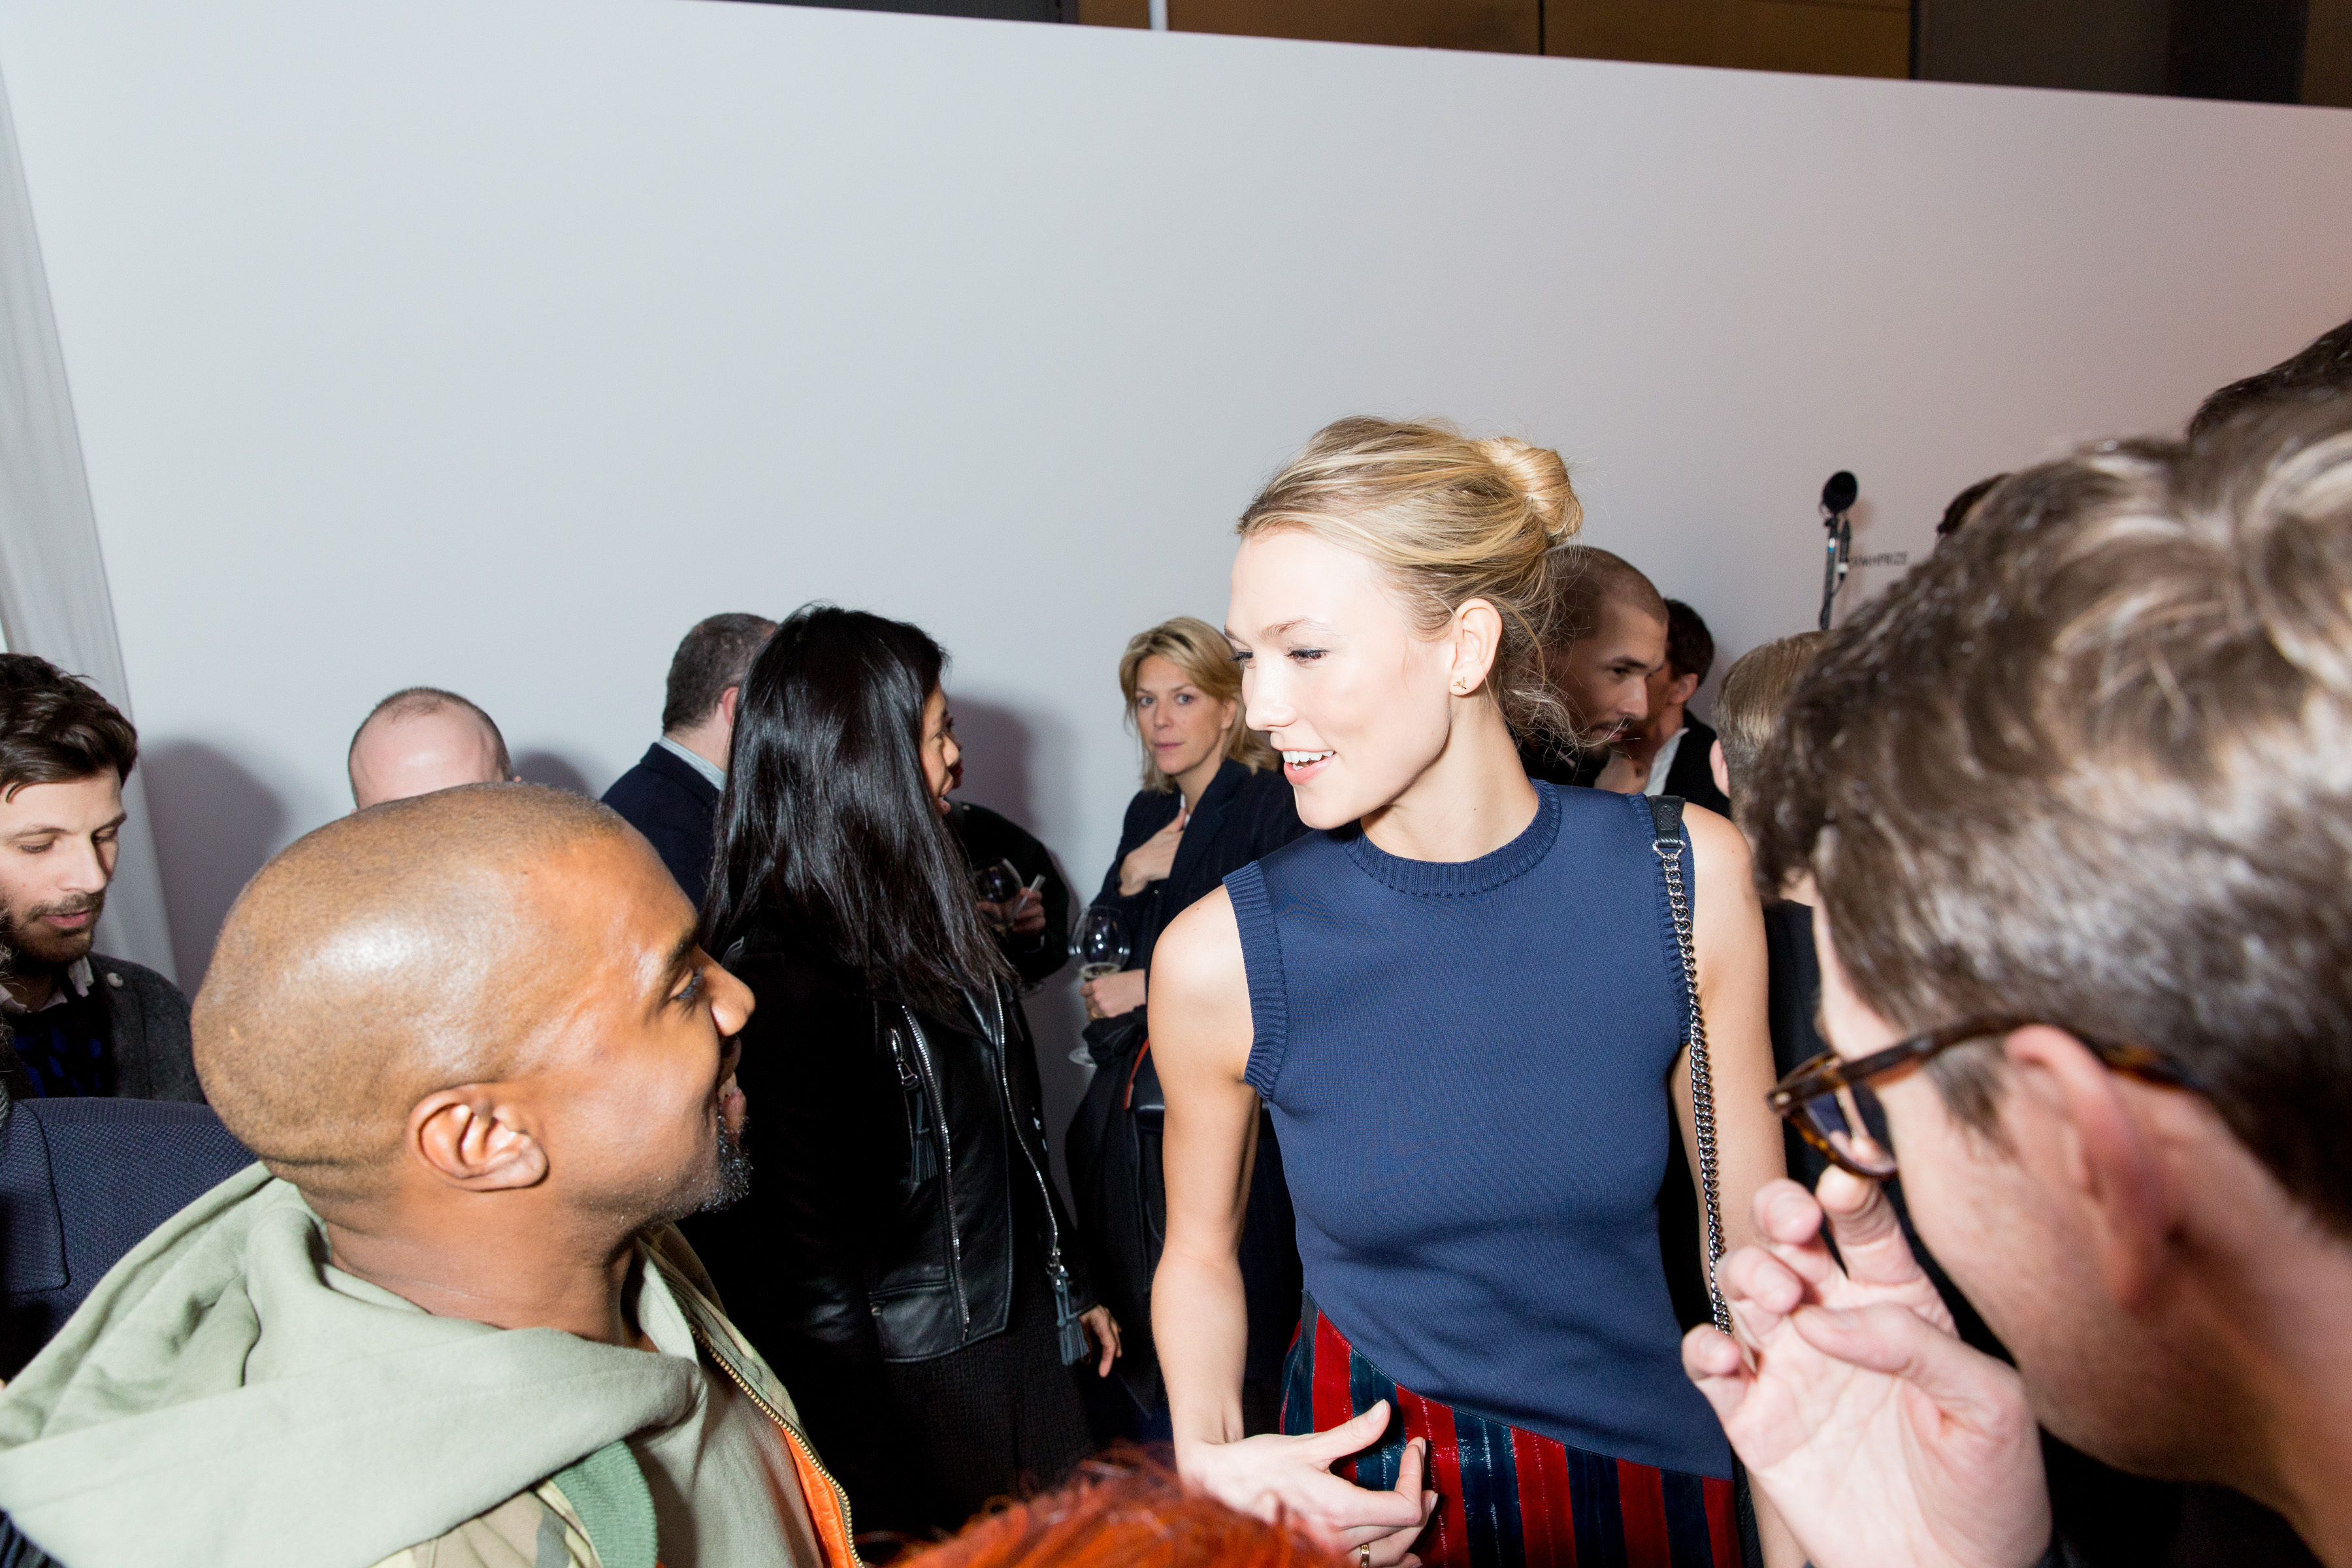 Kanye West and Karlie Kloss chat at the LVMH Prize soirée (Photo: BFA).